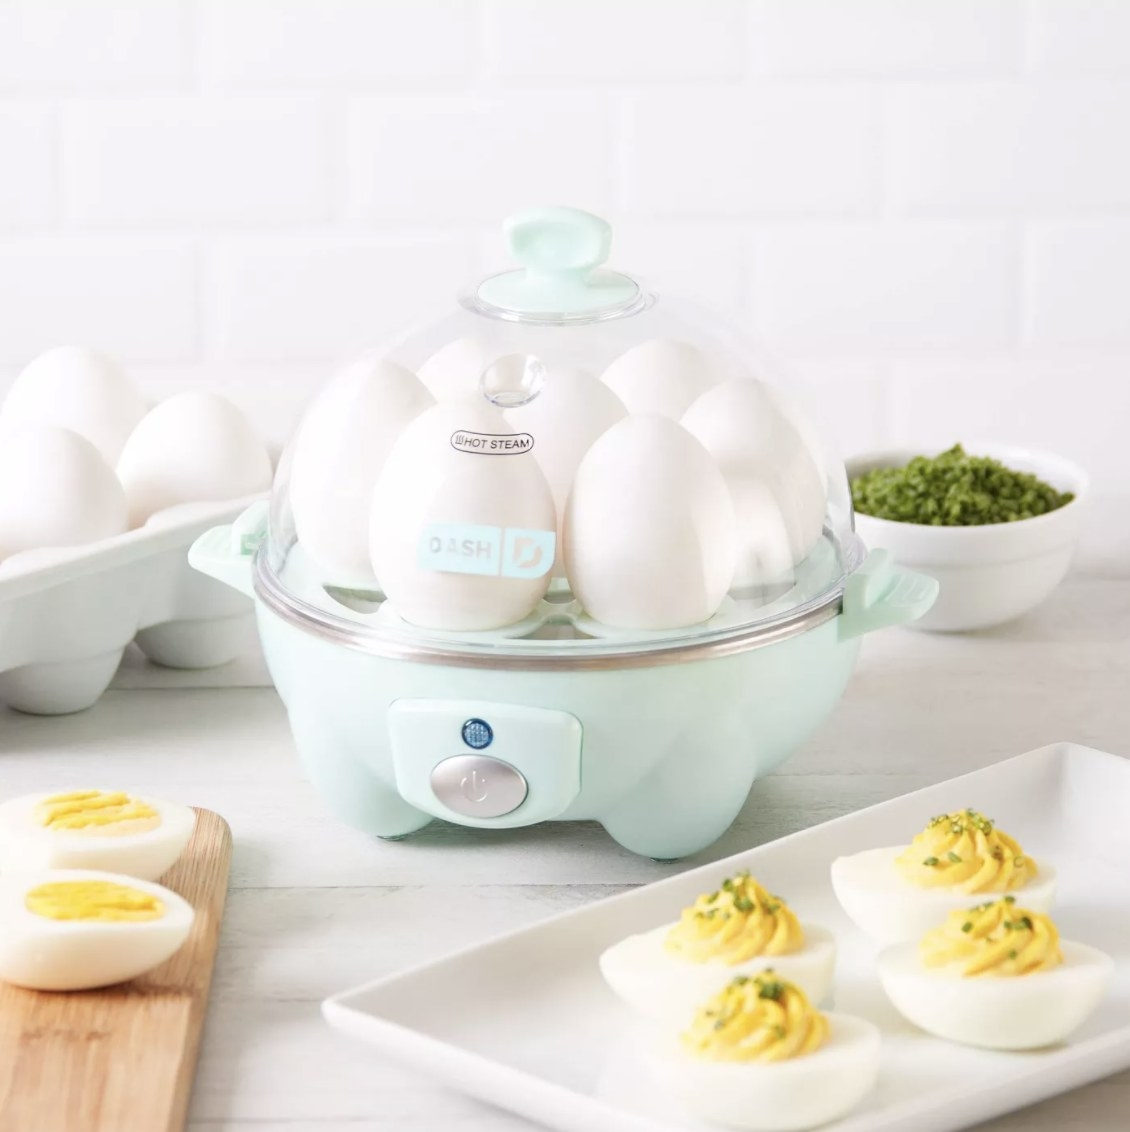 the egg cooker in aqua surrounded by eggs